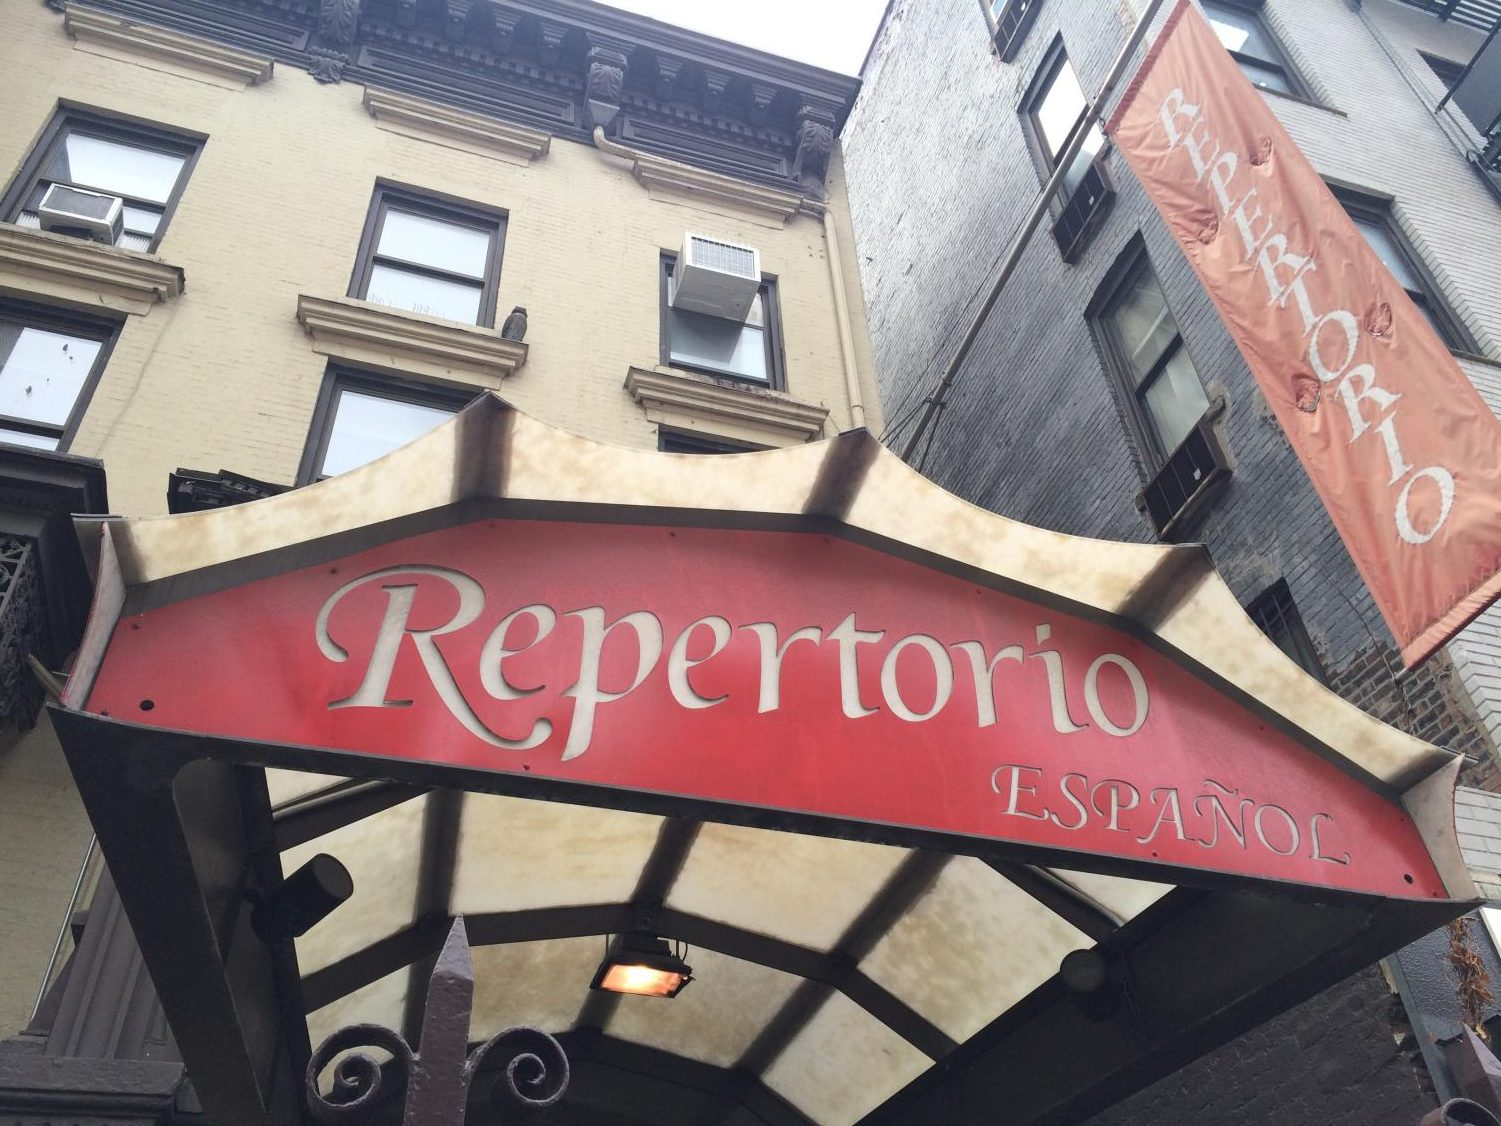 Entrance to Repertorio Español (NYC)